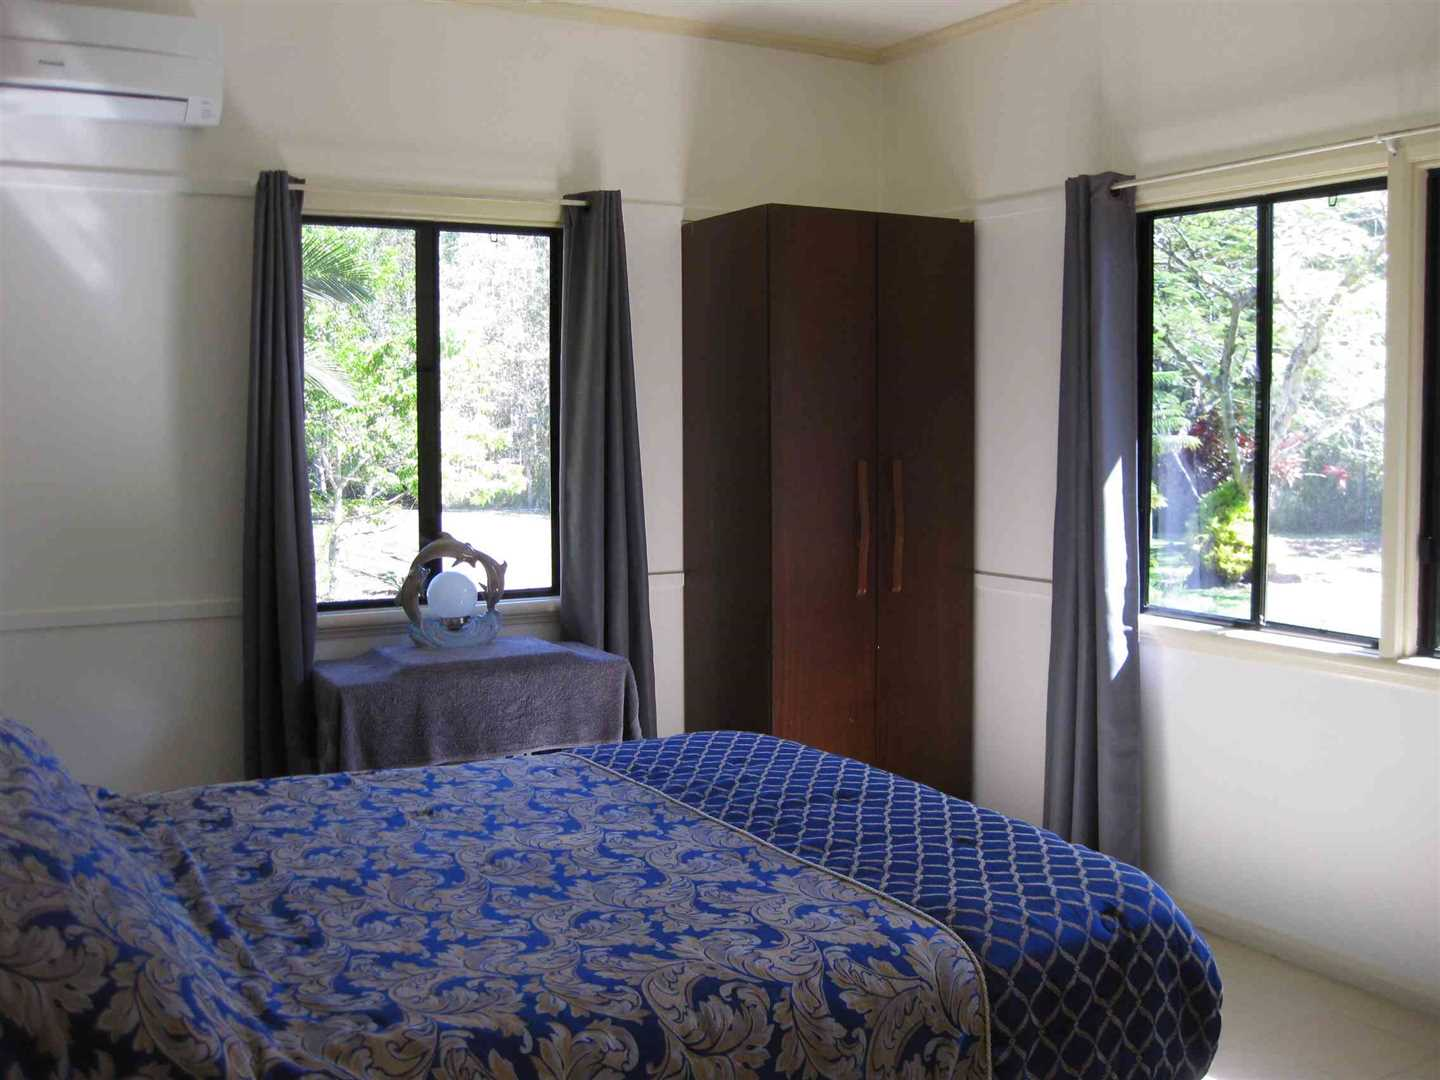 Inside view of part of home showing part of bedroom 1